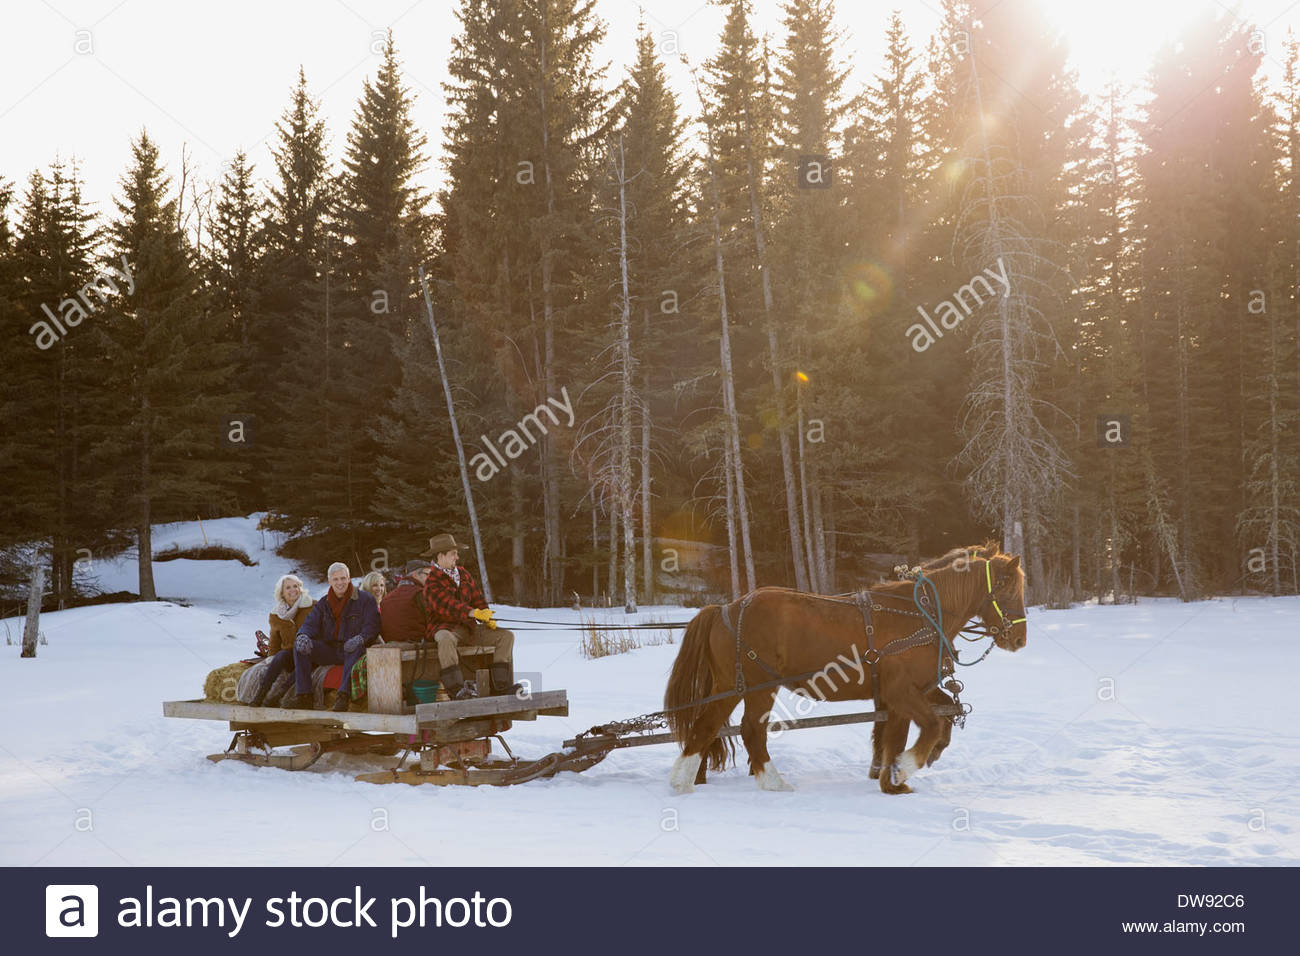 Friends riding horse-drawn sleigh in snow Stock Photo